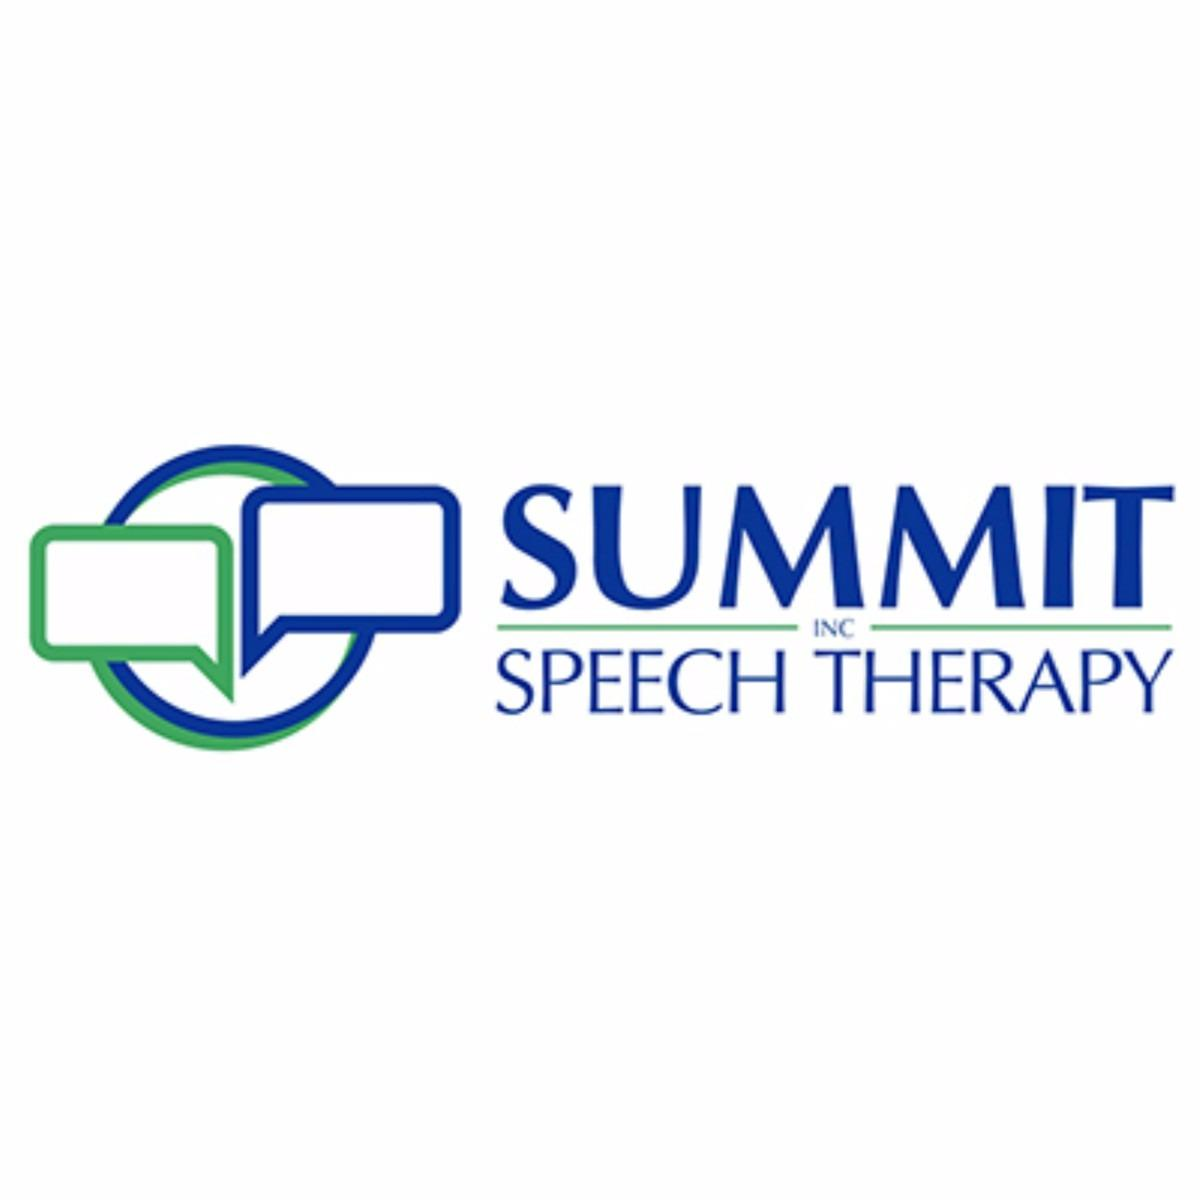 Summit Speech Therapy Inc image 5